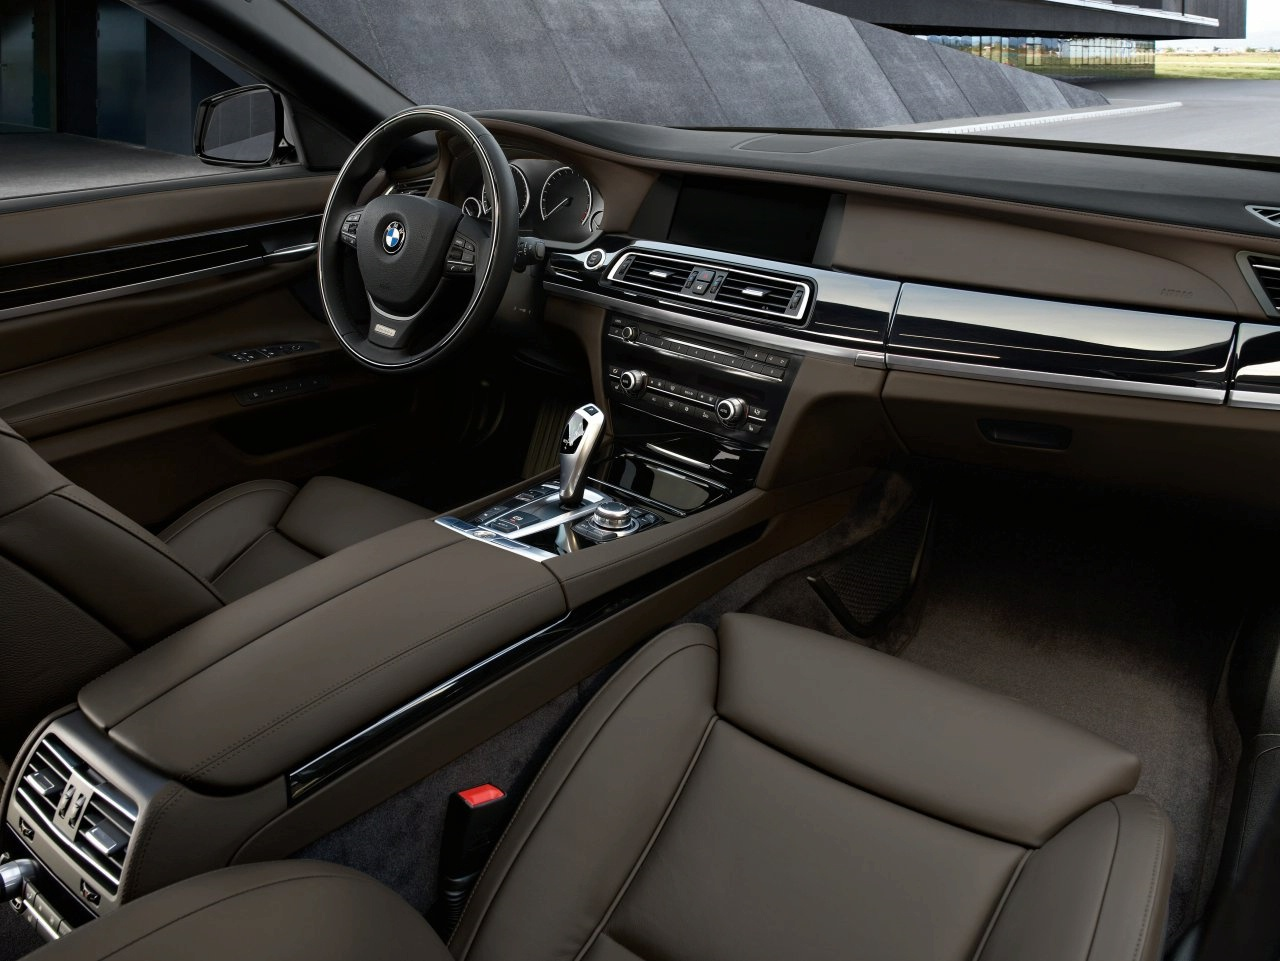 Bmw 7 Series 2012 Interior